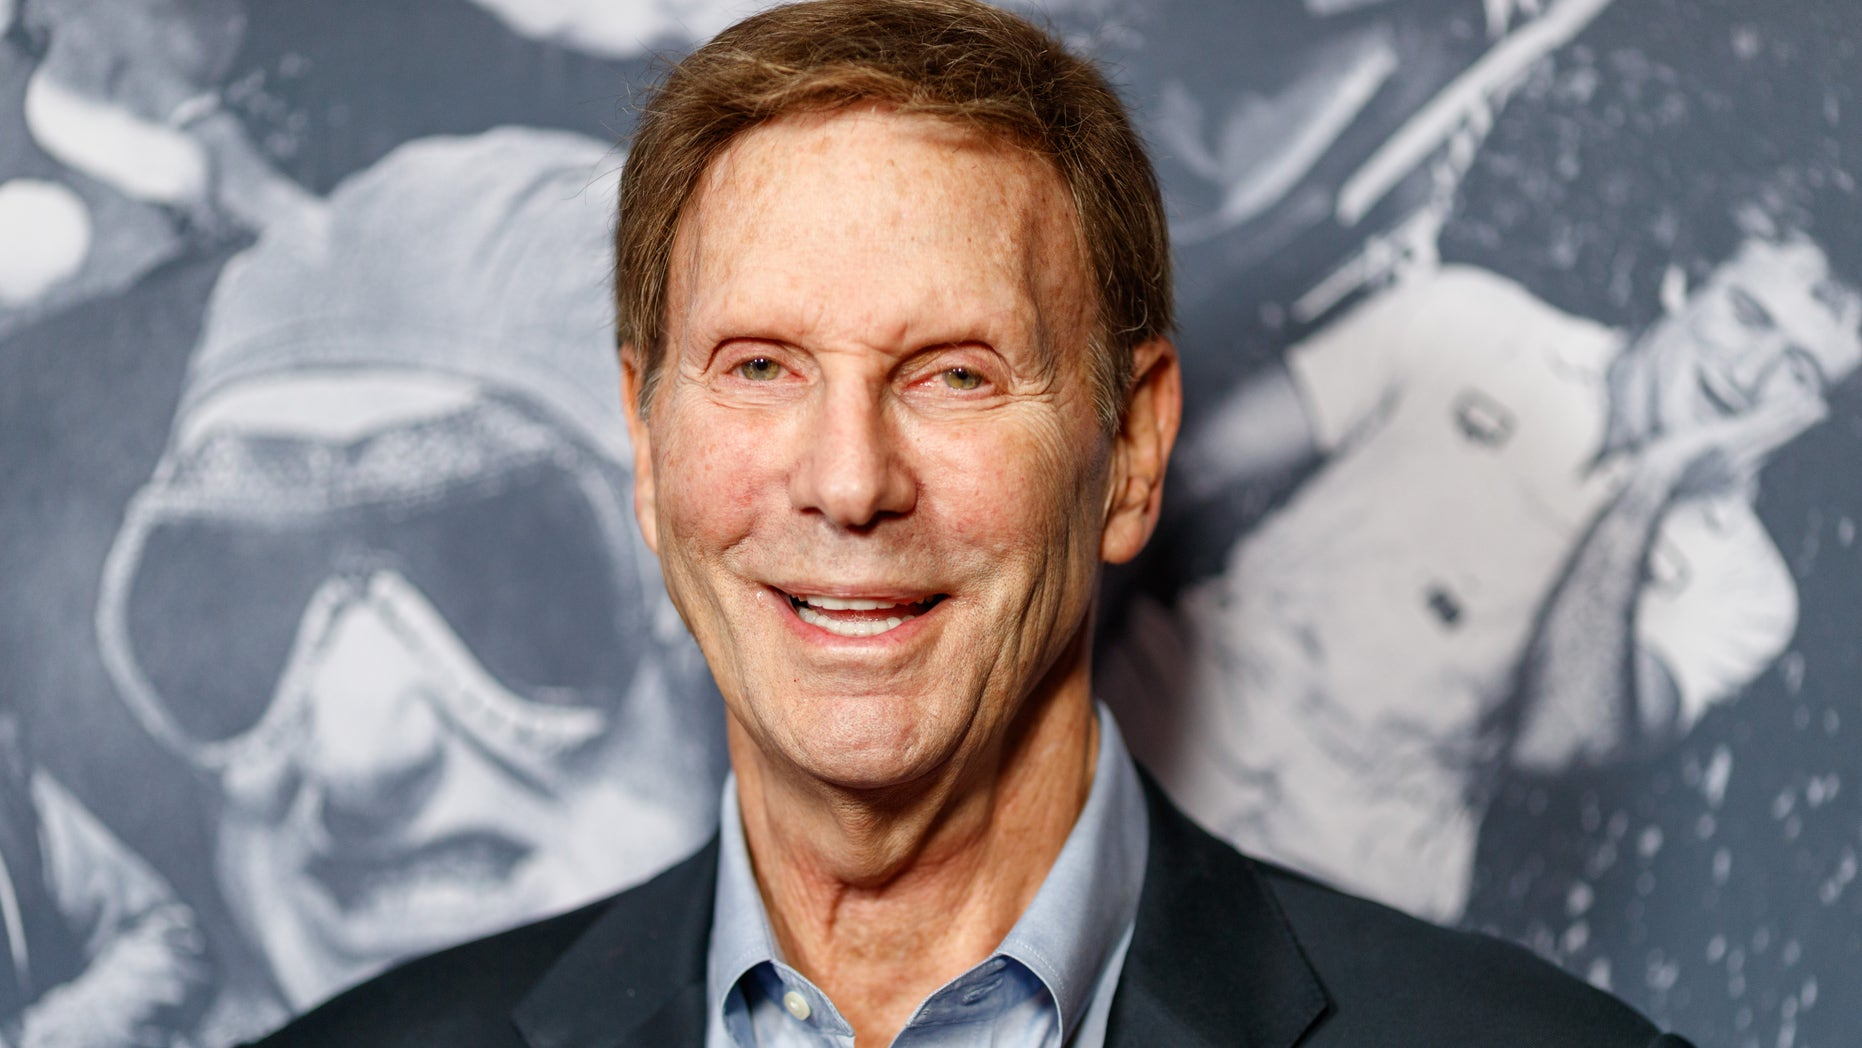 Bob Einstein, 'Curb Your Enthusiasm' Actor, Dies at 76